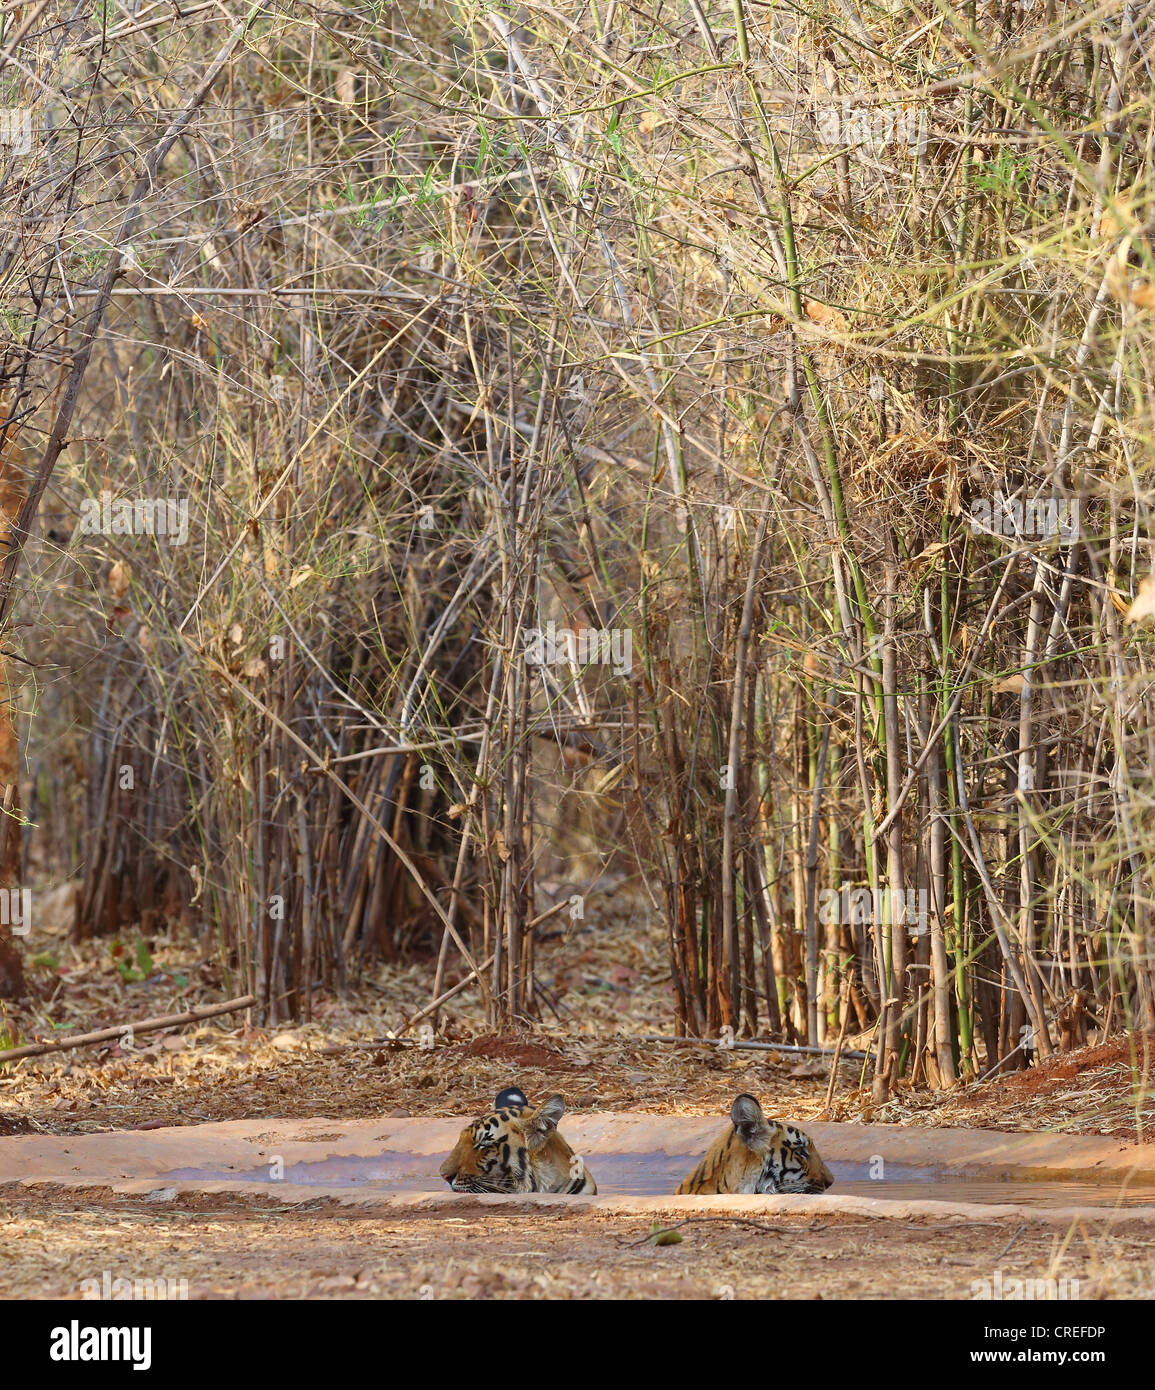 Two tiger cubs staring in opposite directions while cooling off in waterhole in Tadoba jungle, India. - Stock Image